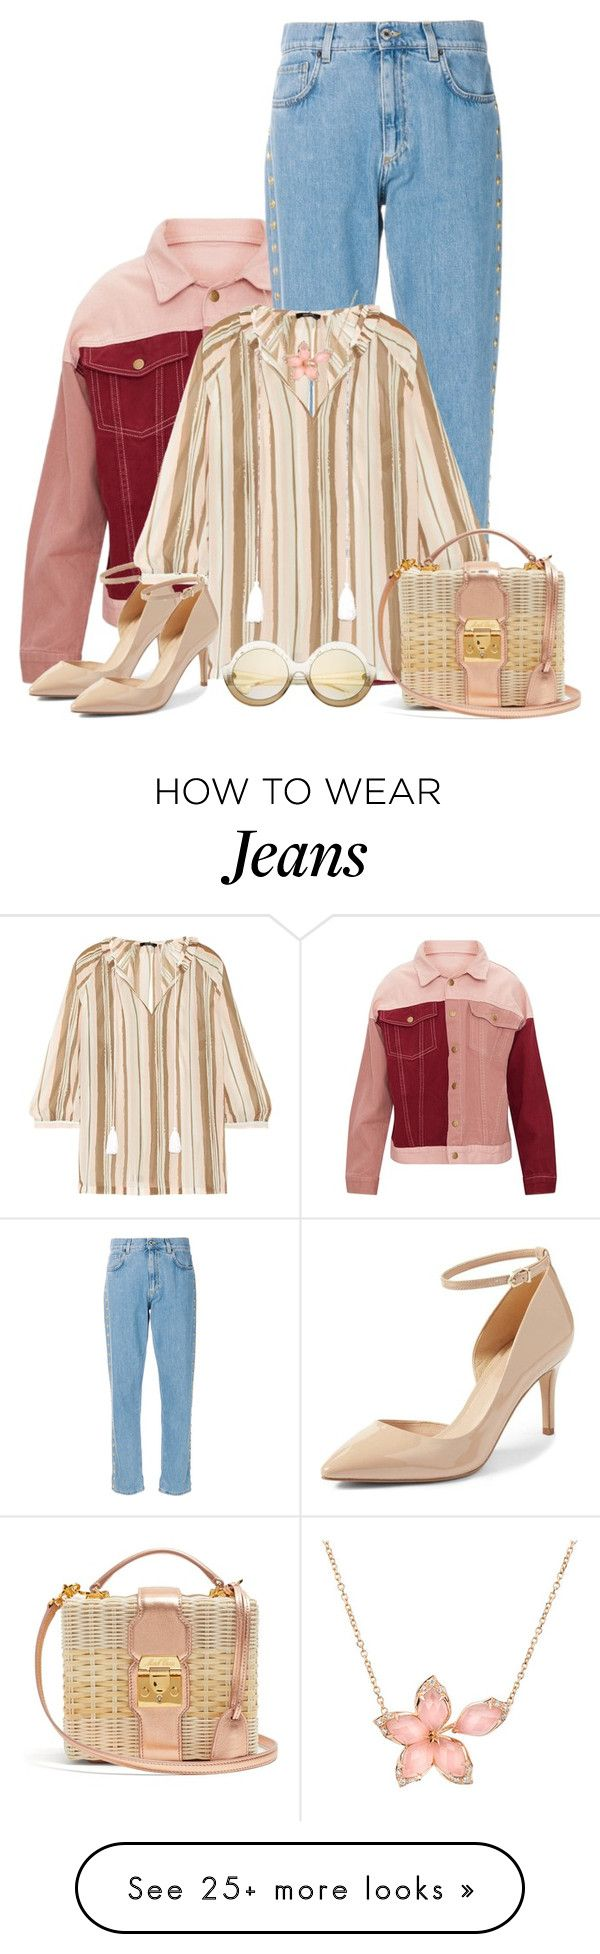 """Stripes that define. IV"" by tuomoon on Polyvore featuring Moschino, Raoul, Mark Cross and Stephen Webster"